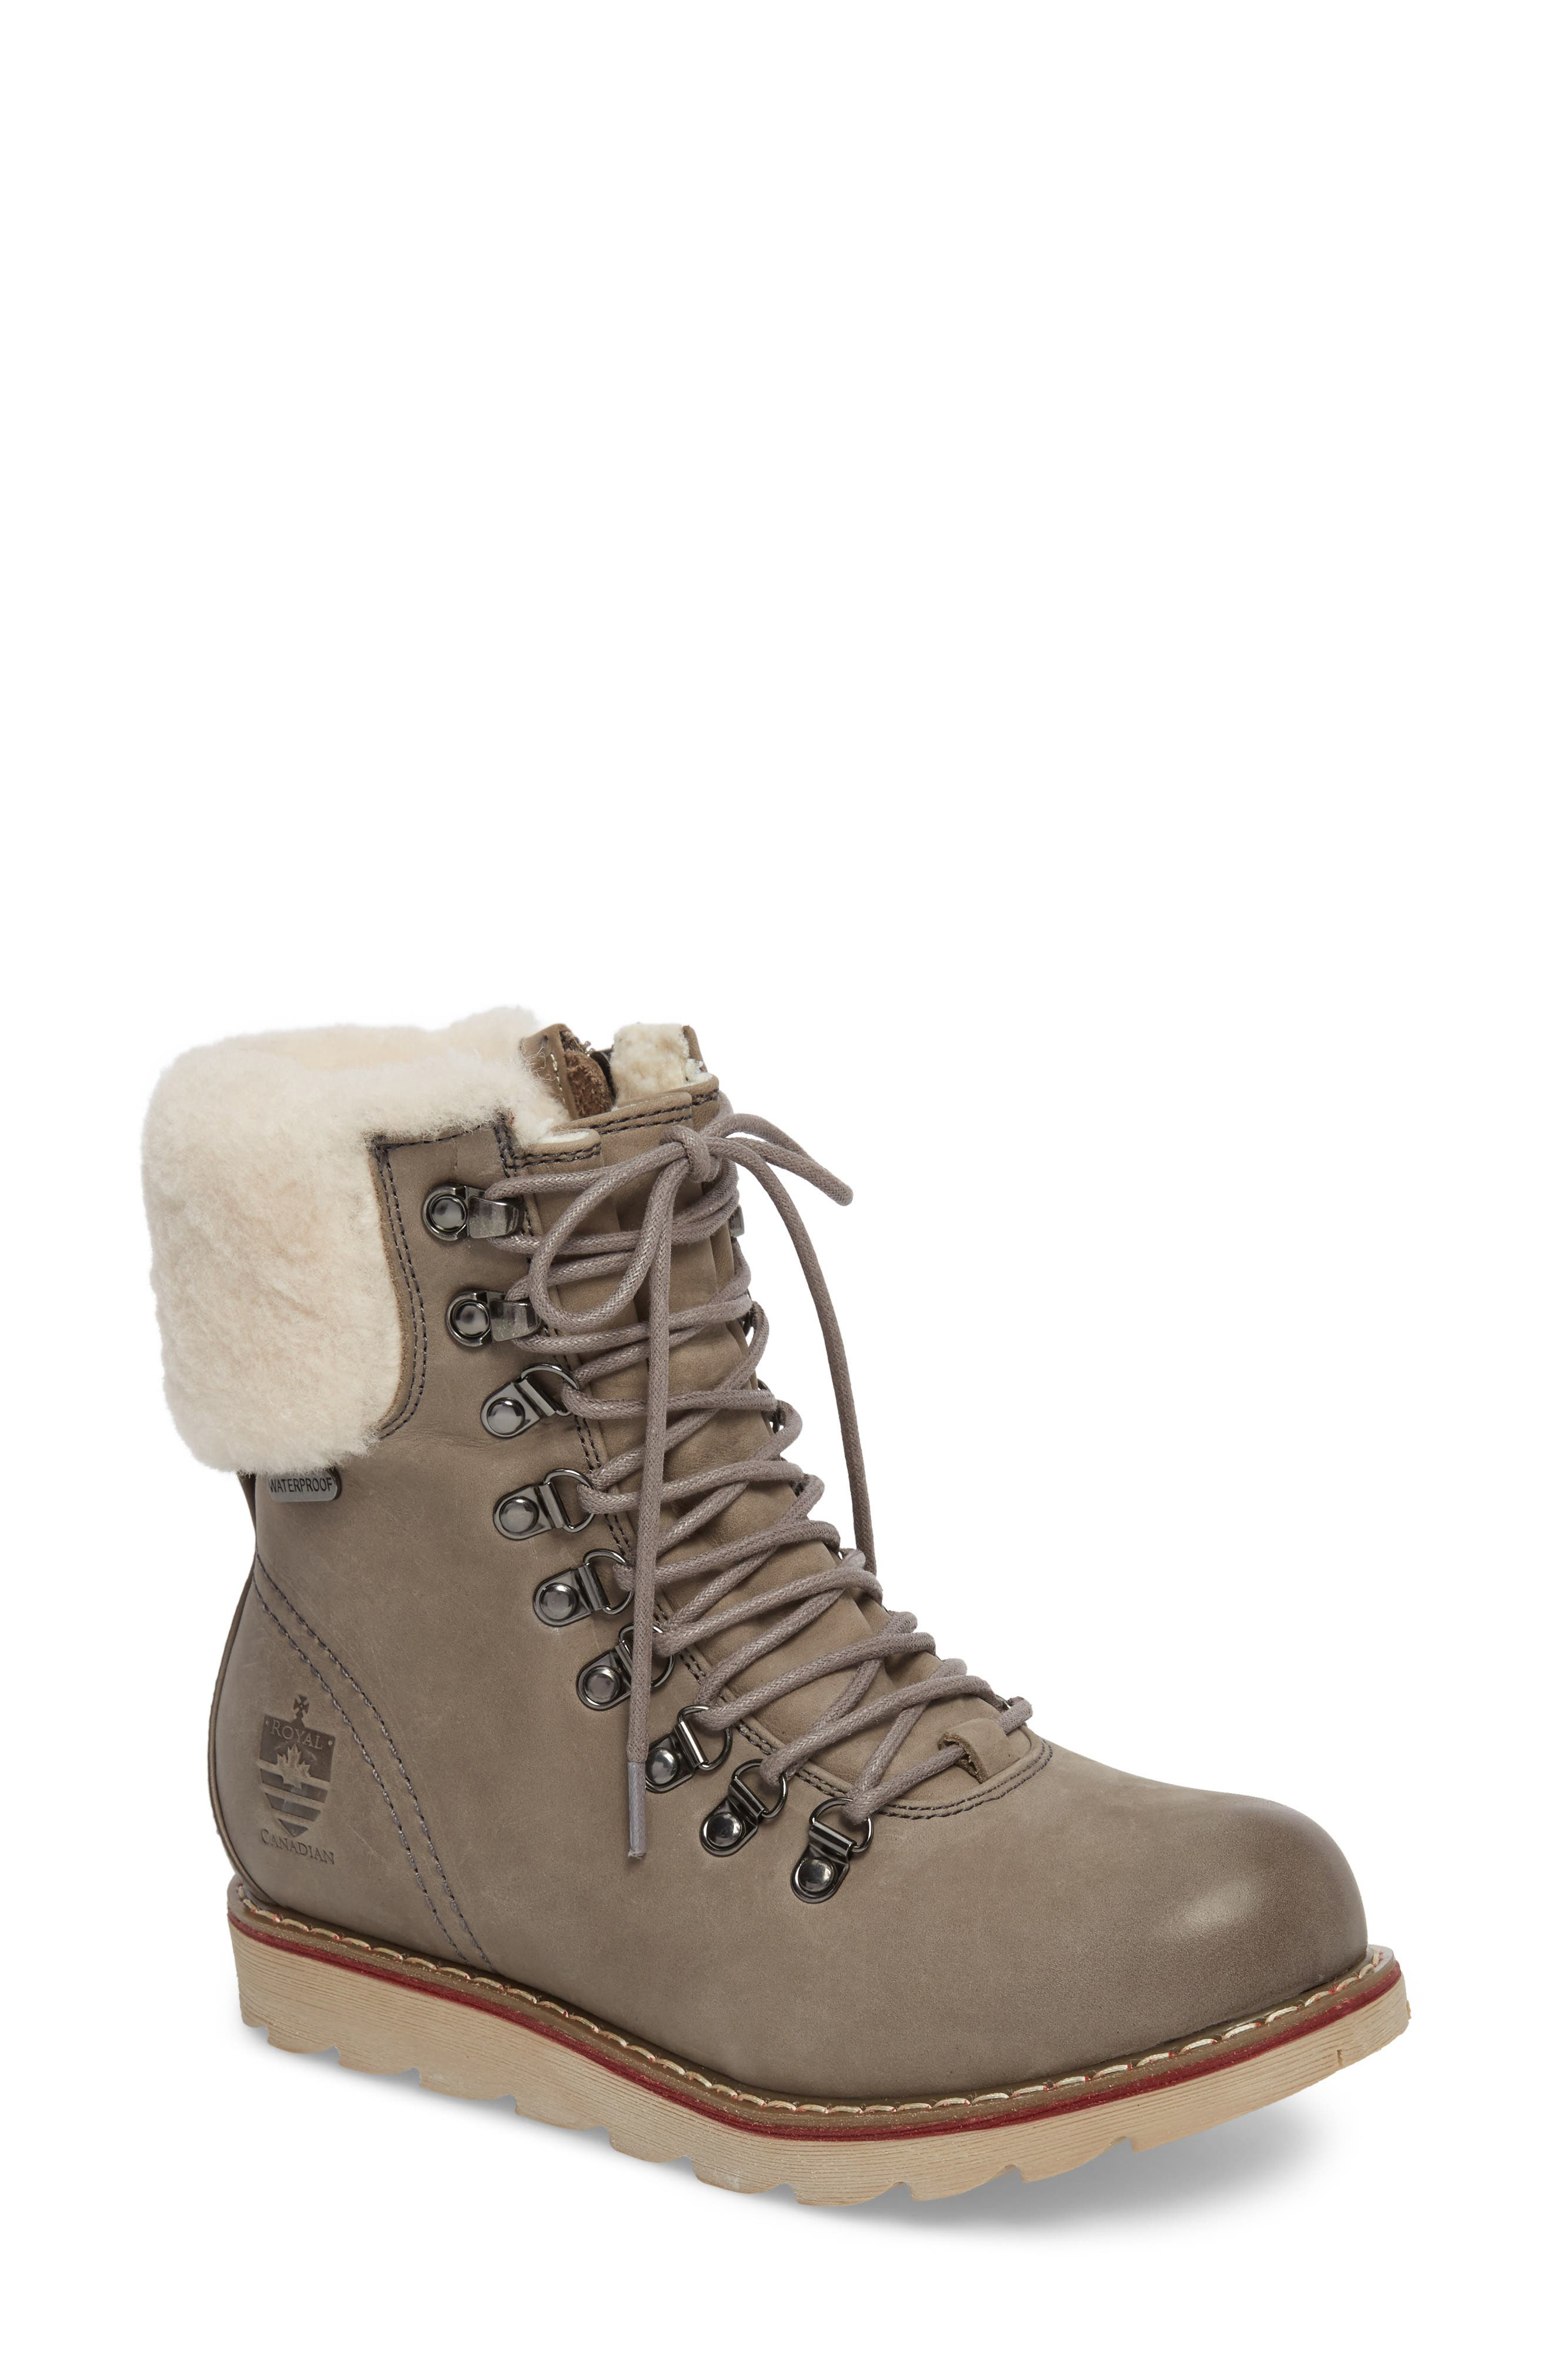 Lethbridge Waterproof Snow Boot with Genuine Shearling Cuff,                             Main thumbnail 1, color,                             Grey Leather